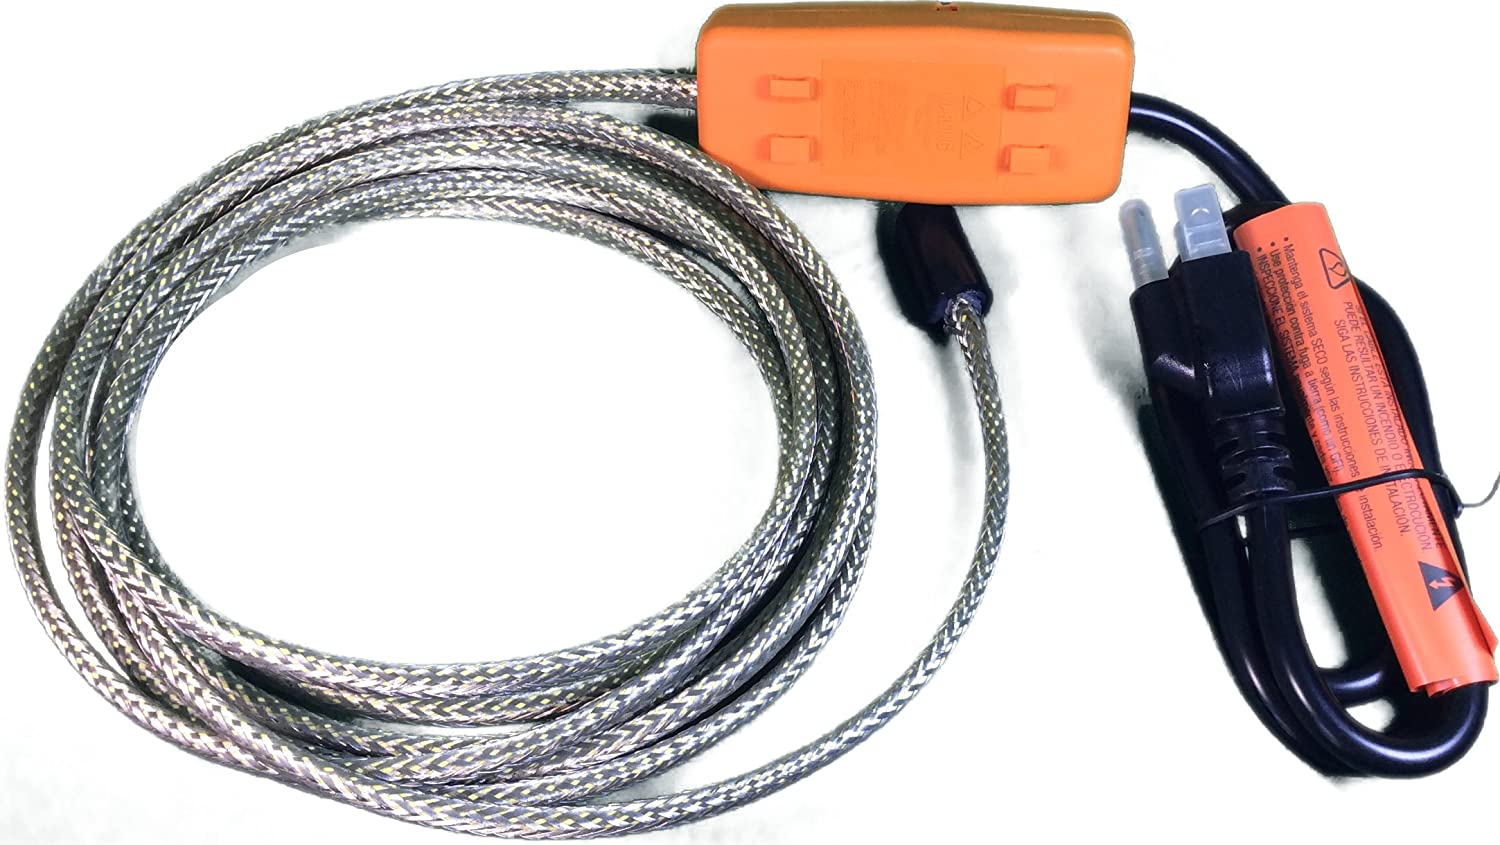 Heat Tape Easy Heat Freeze Protection Cable Waterline Heater Pre-cut to 30 Foot includes Installed Plug Head